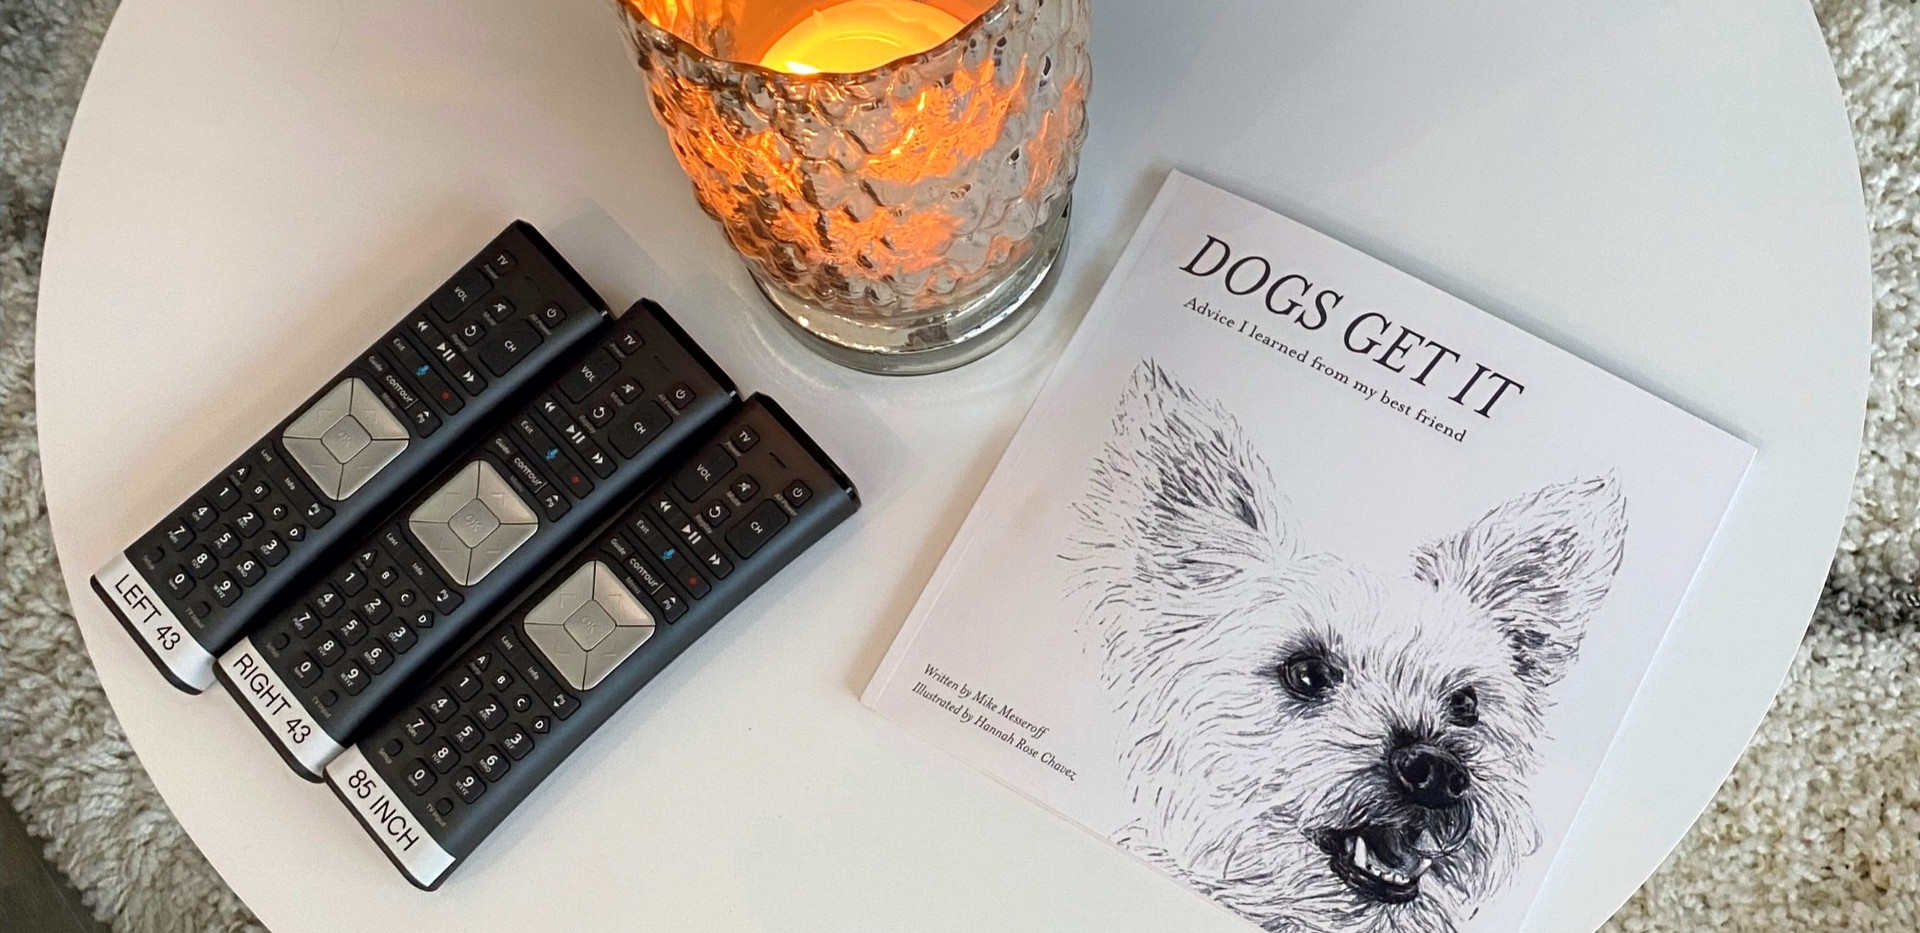 Dogs Get It on a Coffee Table.jpg